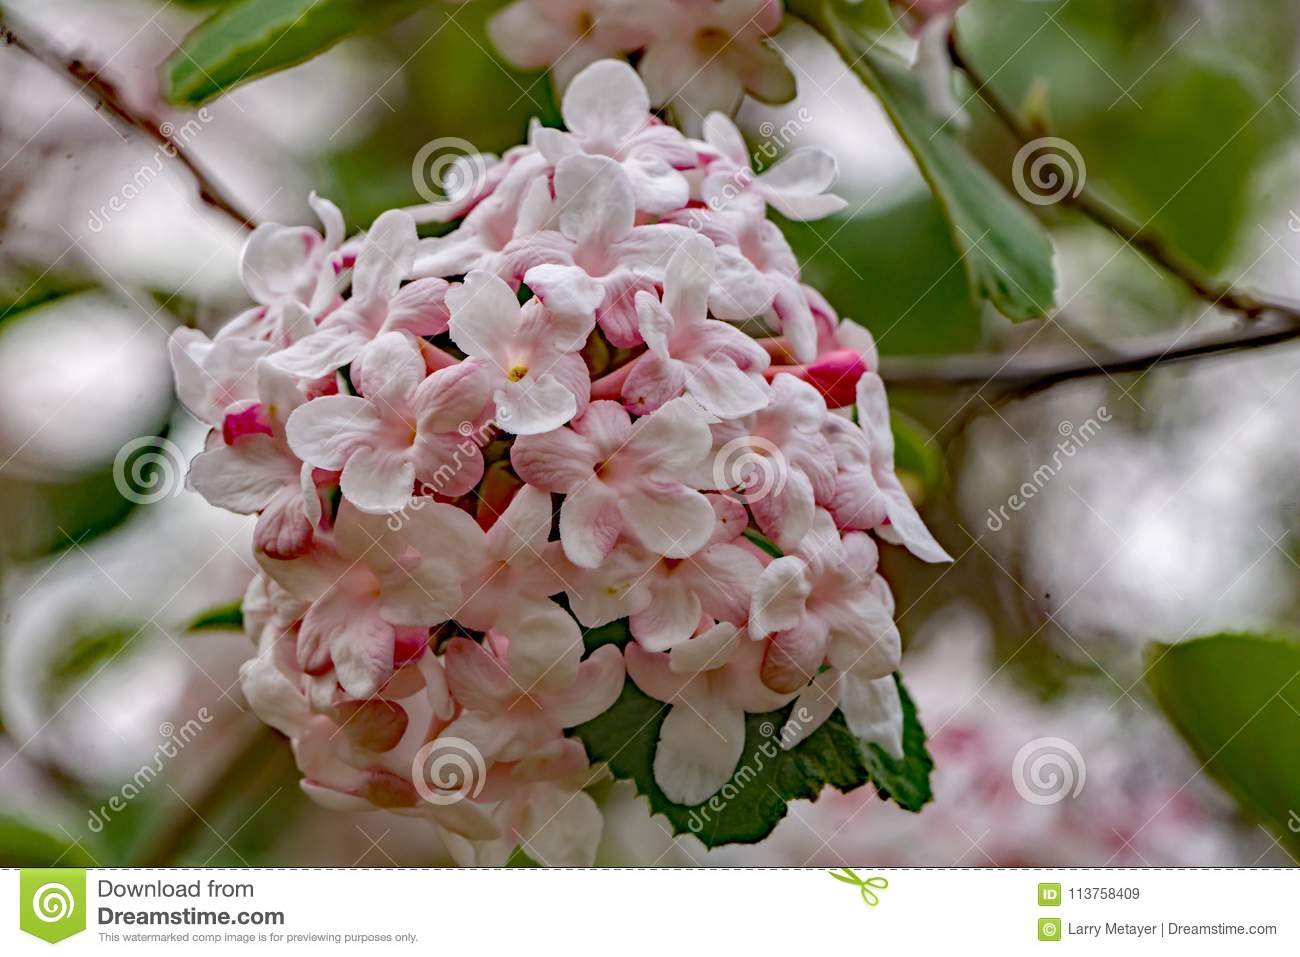 Close up of a white snowball flowers viburnum carlesii stock image download close up of a white snowball flowers viburnum carlesii stock image image mightylinksfo